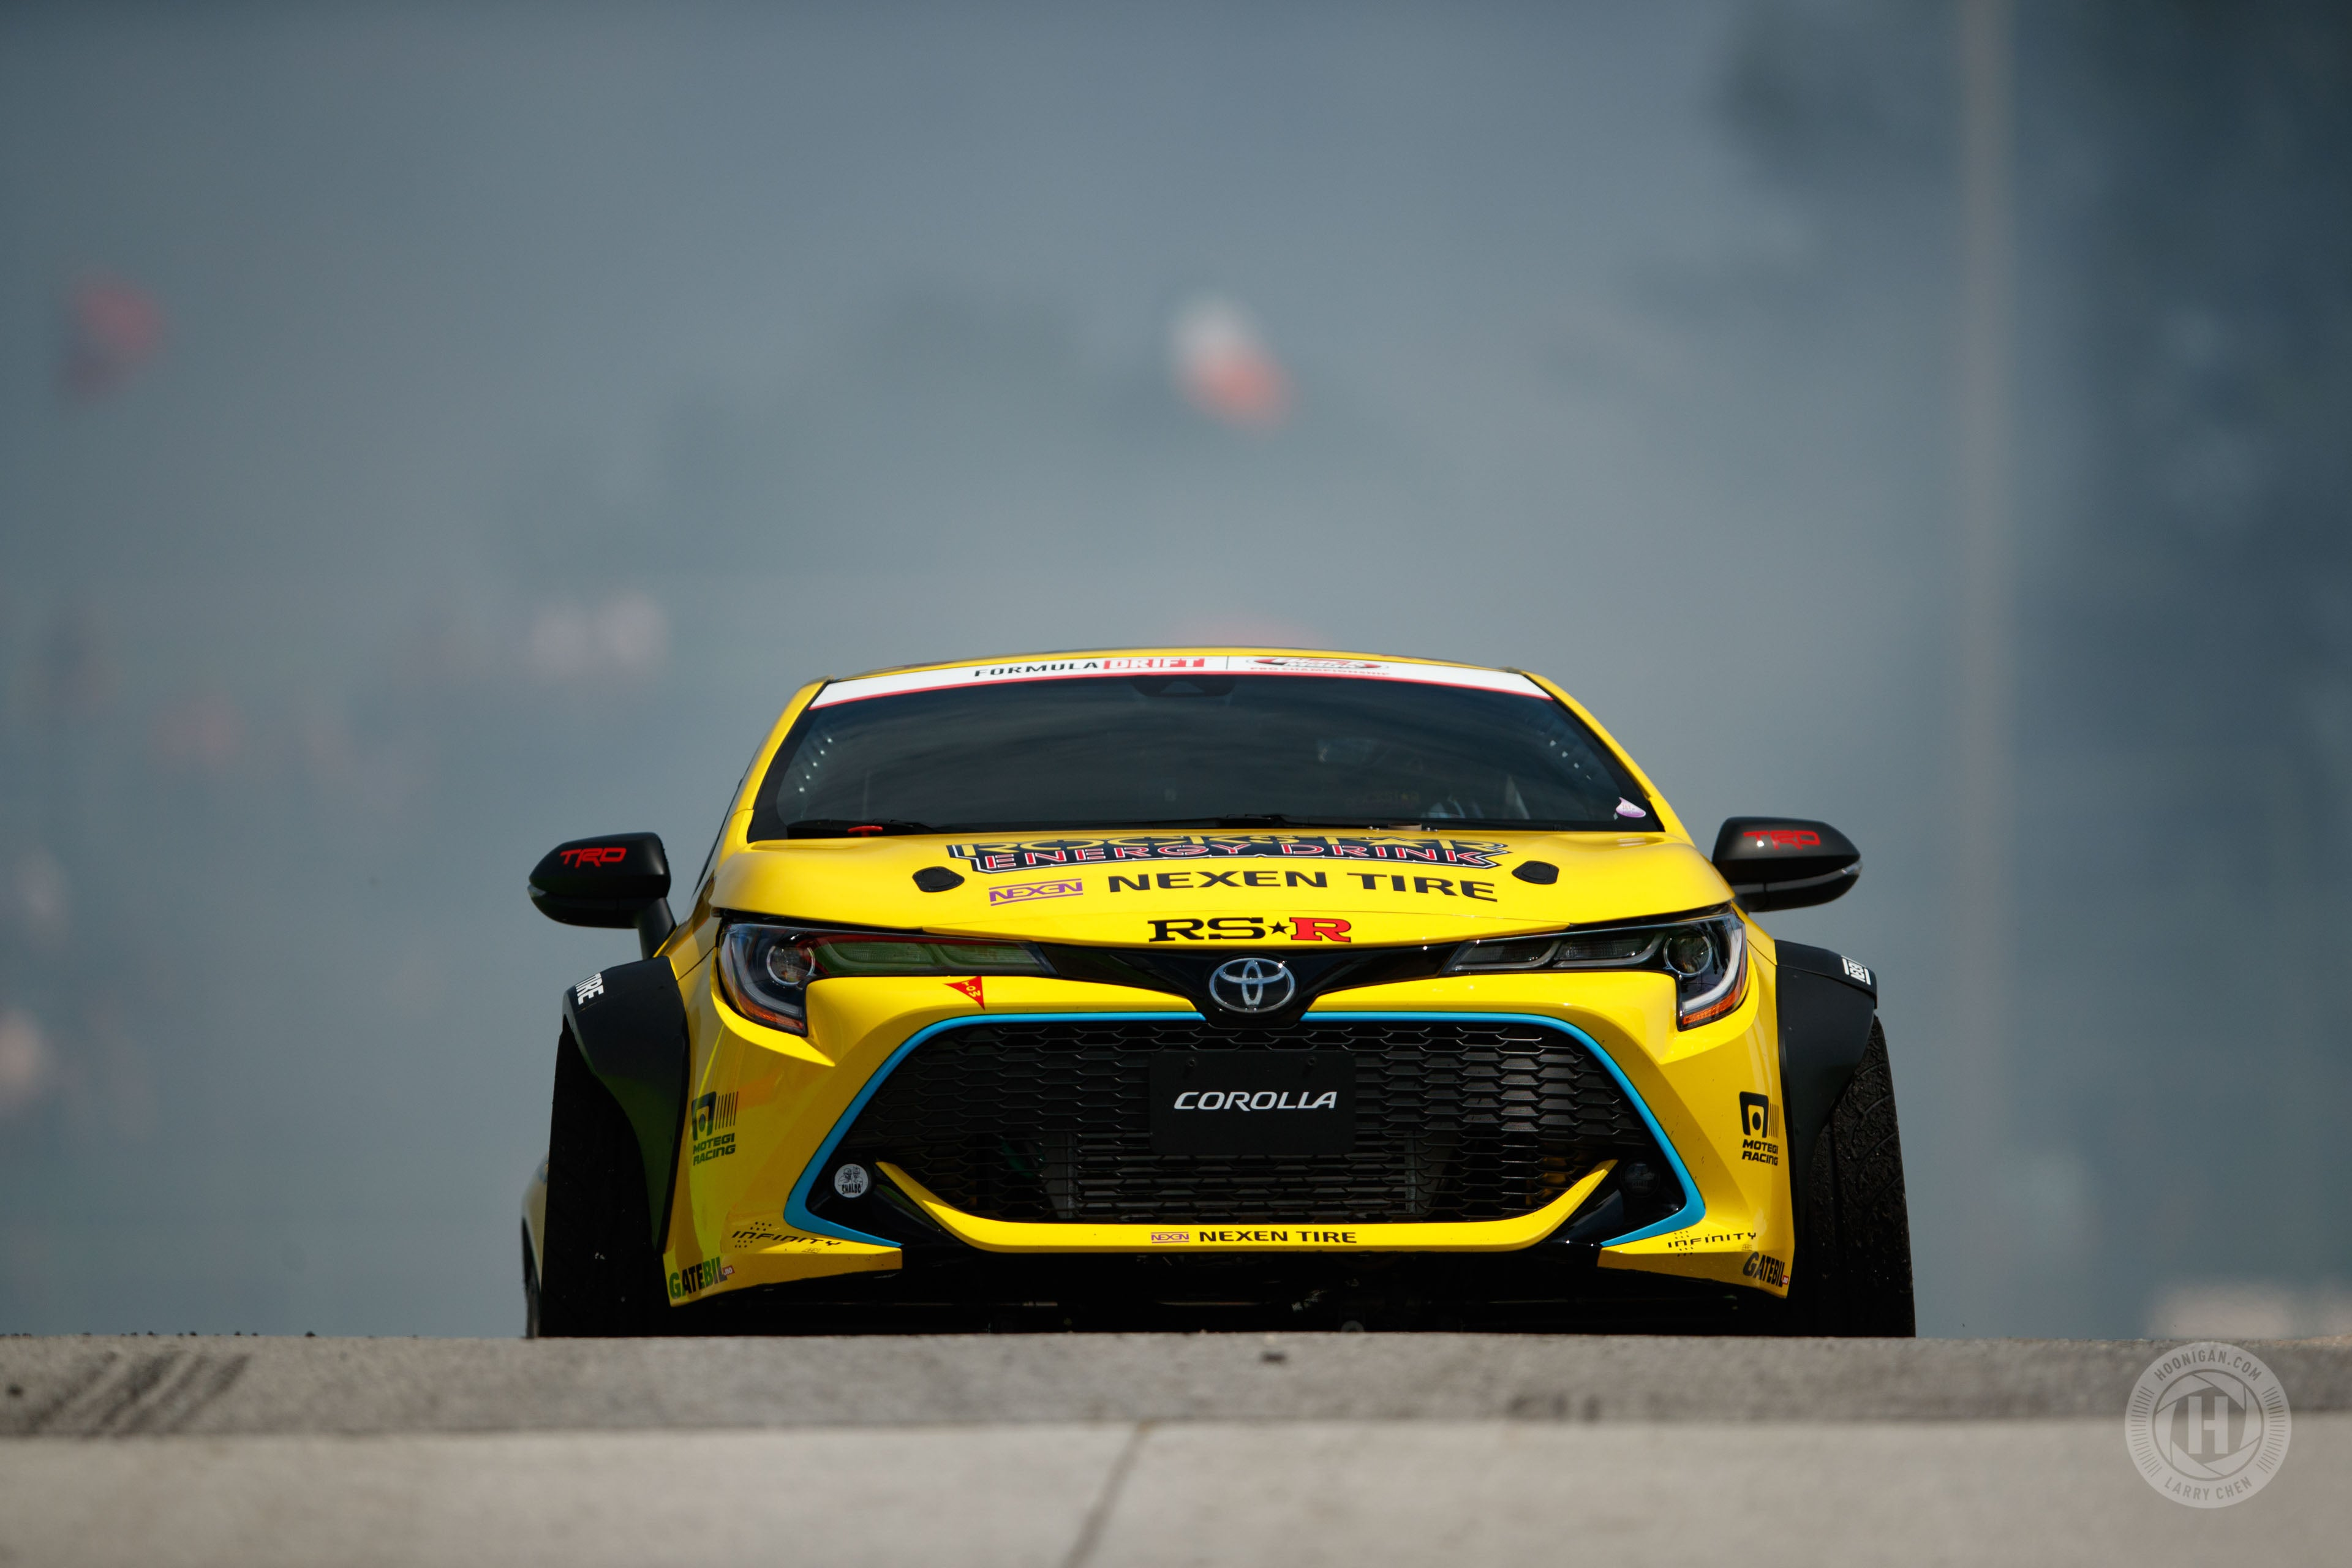 Breaking Tradition Fredric Aasbos 2019 Toyota Corolla Hoonigan Supra Trd Racing A 1998 Stephan Says This Is The Sixth Generation Steering Design From All Of Drift Cars He Has Built And Capable 68 Degrees